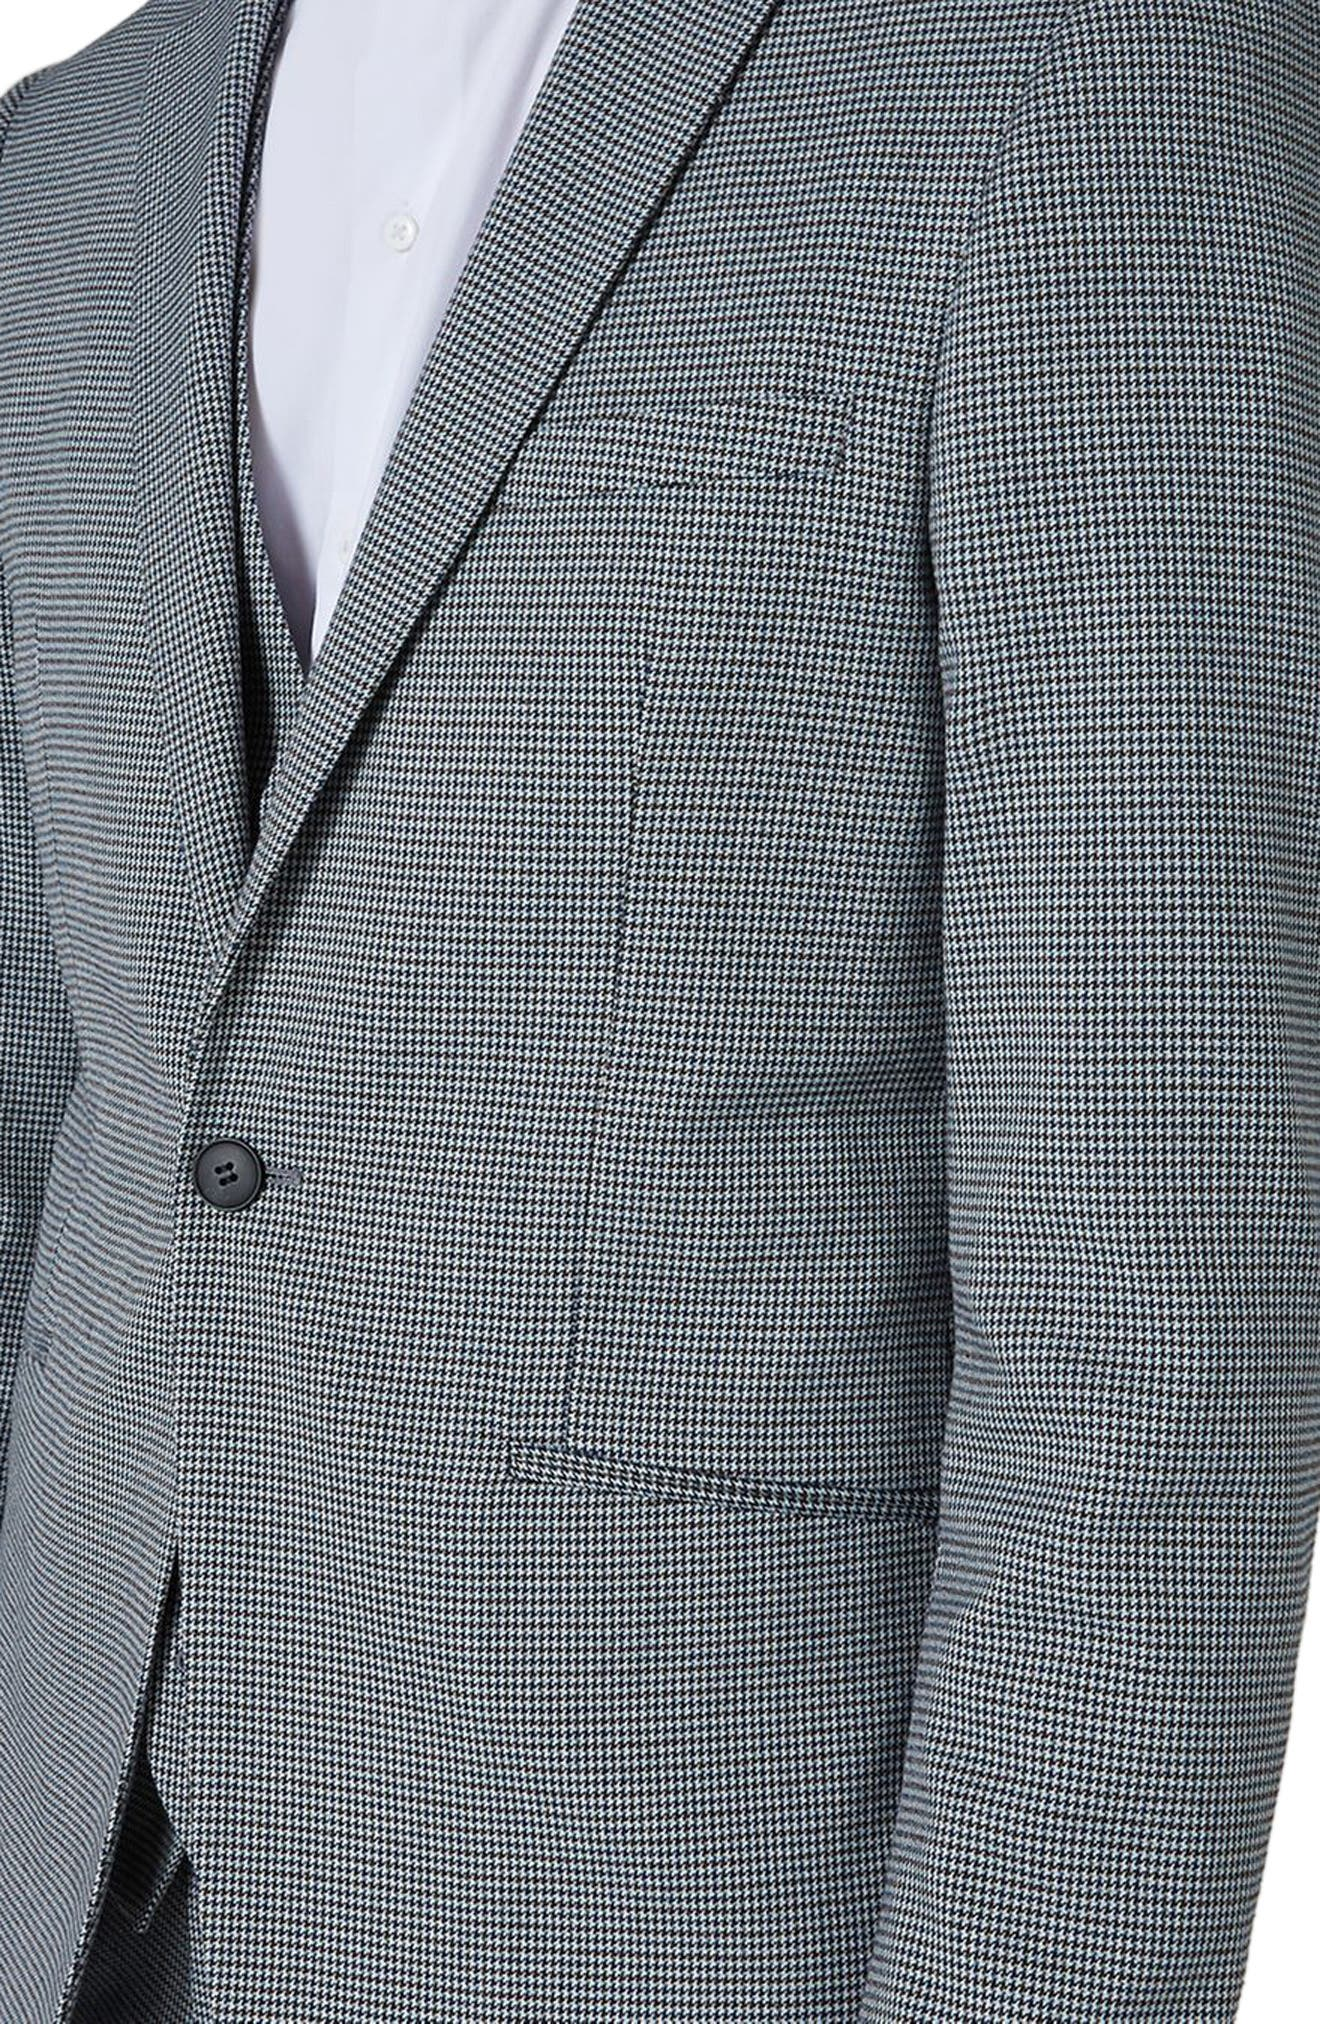 Skinny Fit Houndstooth Suit Jacket,                             Alternate thumbnail 3, color,